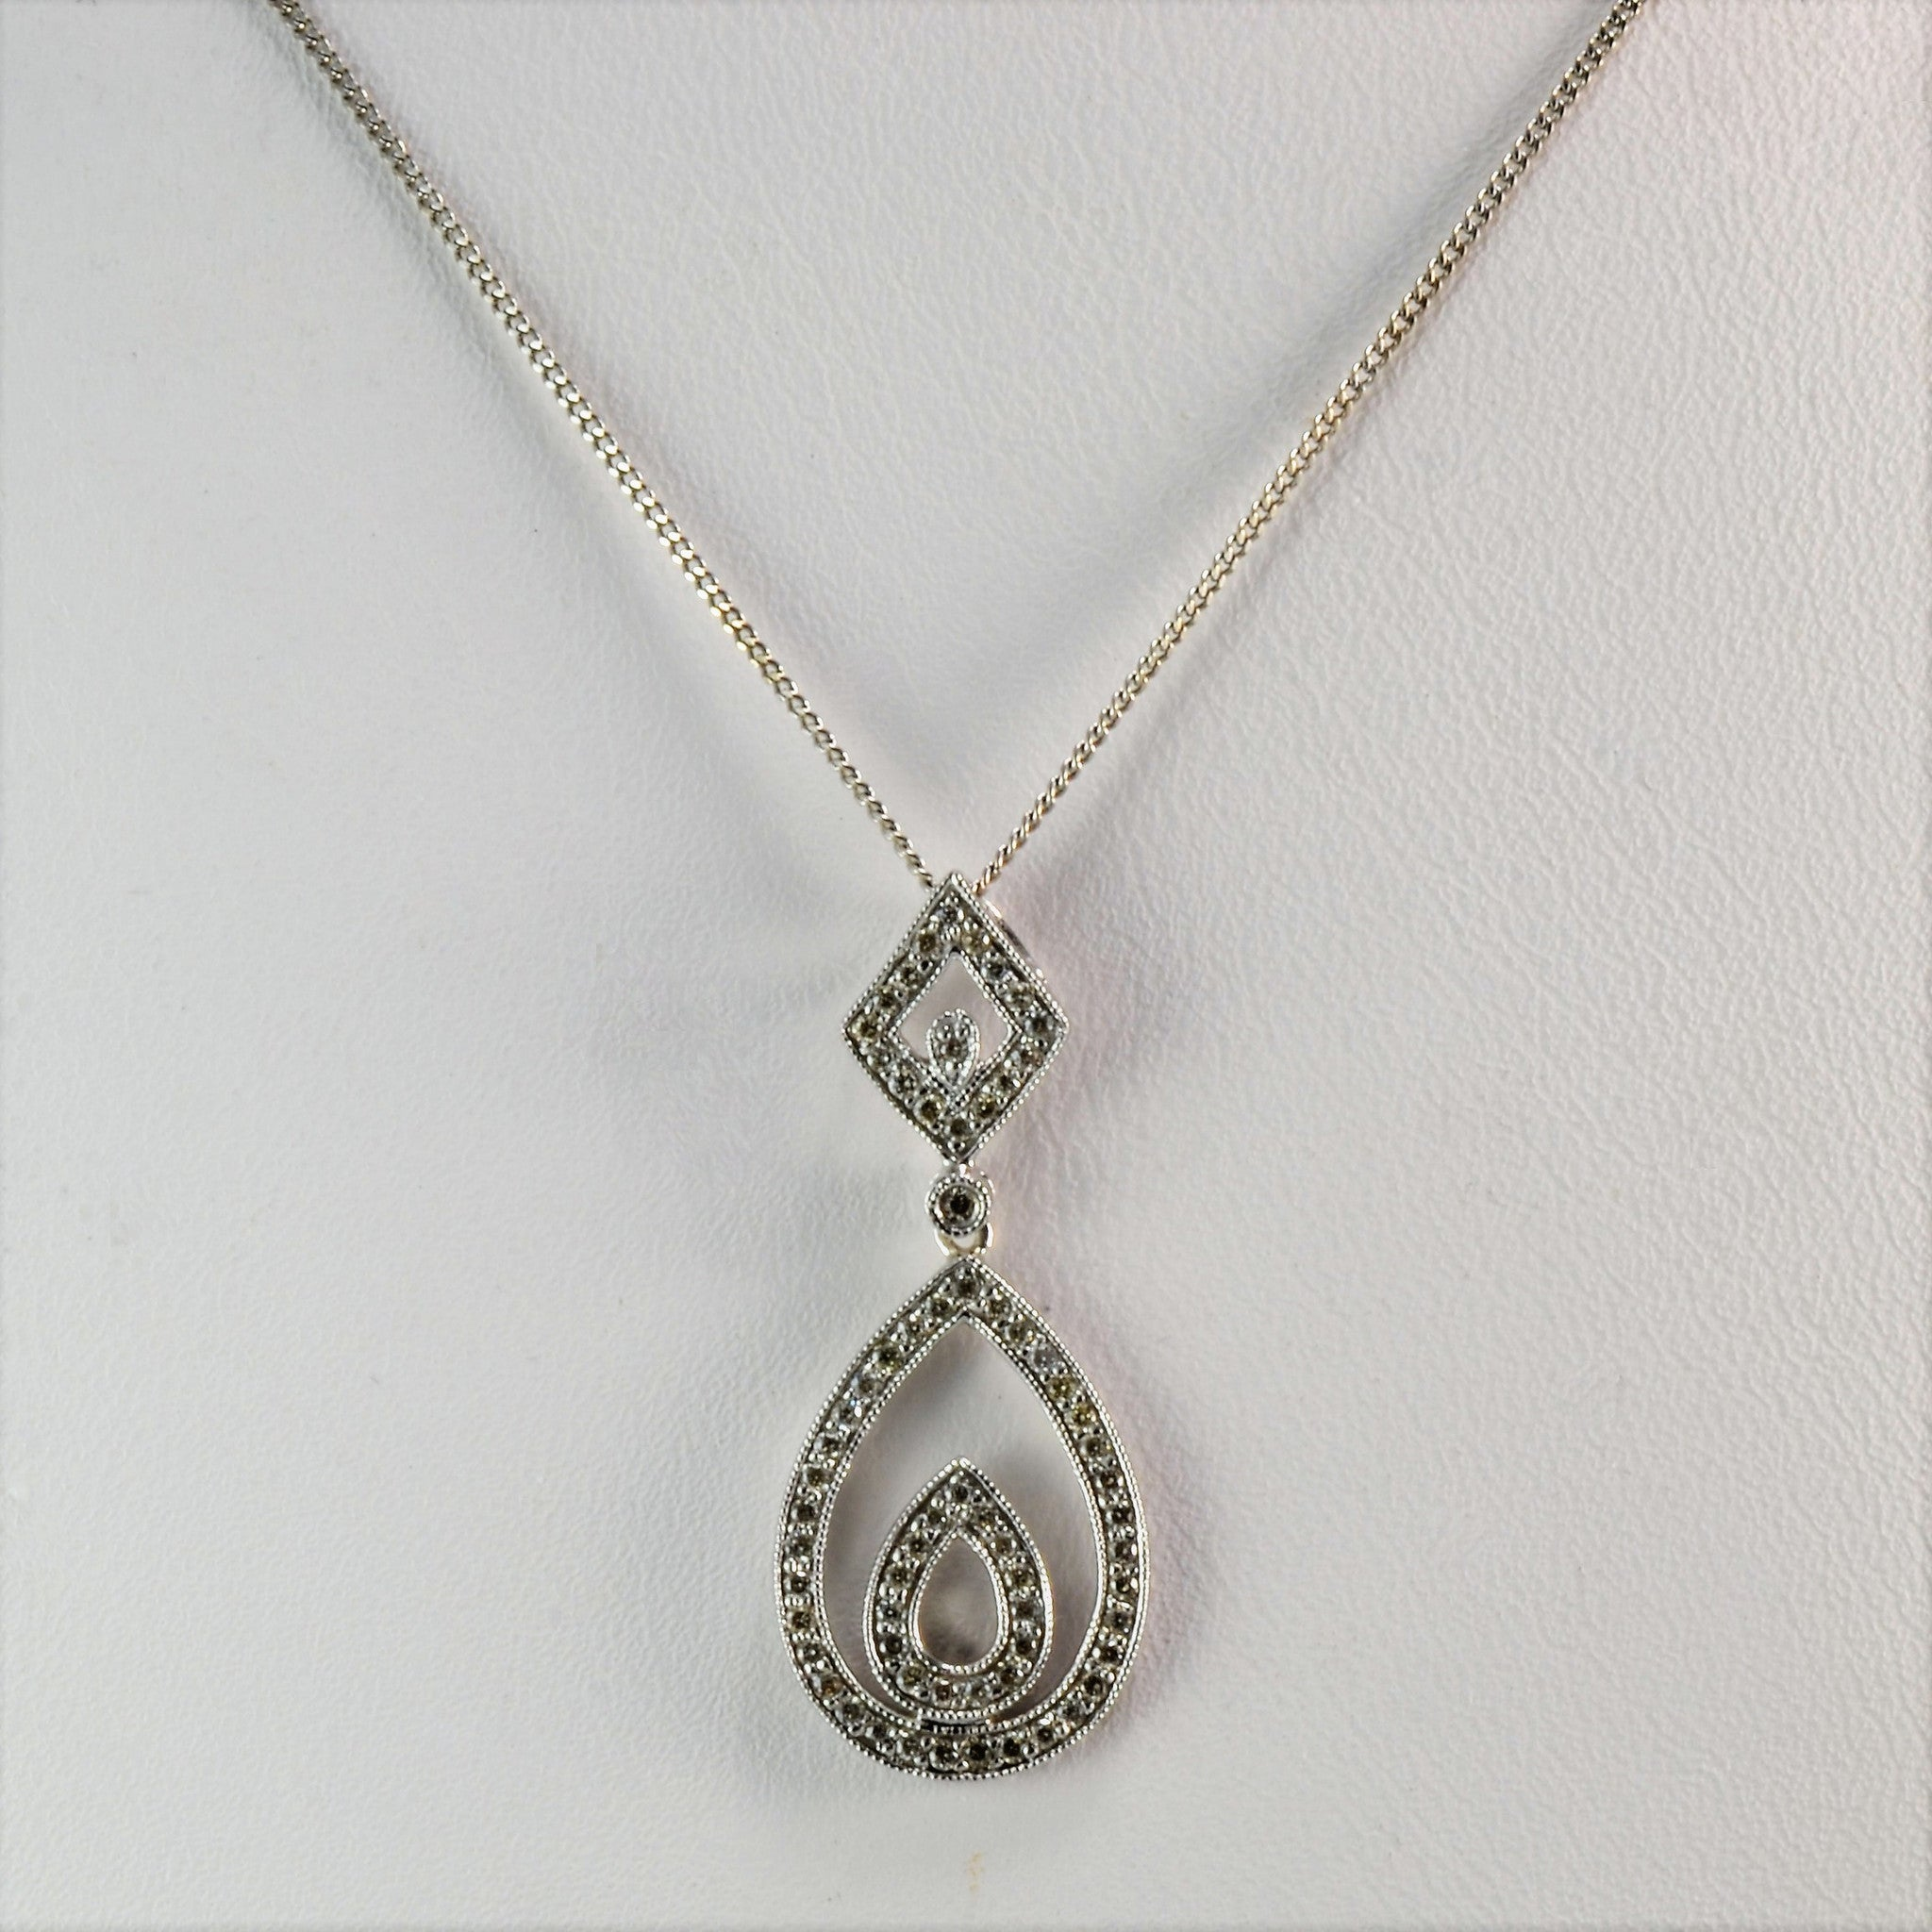 Diamond Pear Shape Drop Necklace | 0.20 ctw, SZ 18"